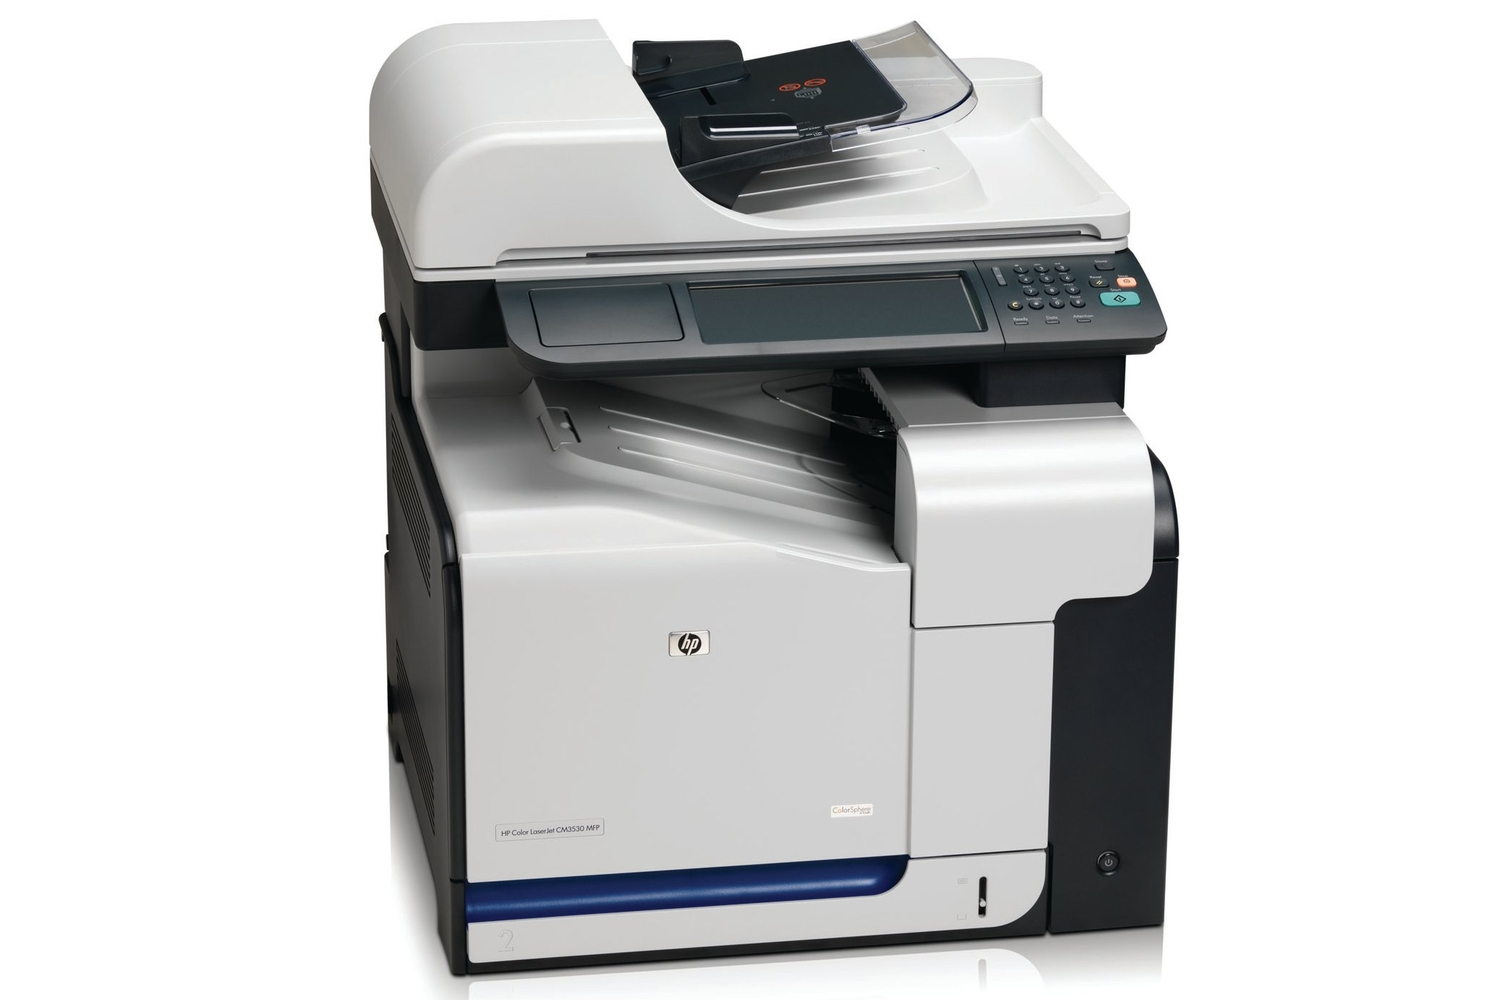 HP Colour LaserJet CM3530fs Review: Decent print quality, some design  flaws. - Printers & Scanners - Multifunction Devices - PC World Australia